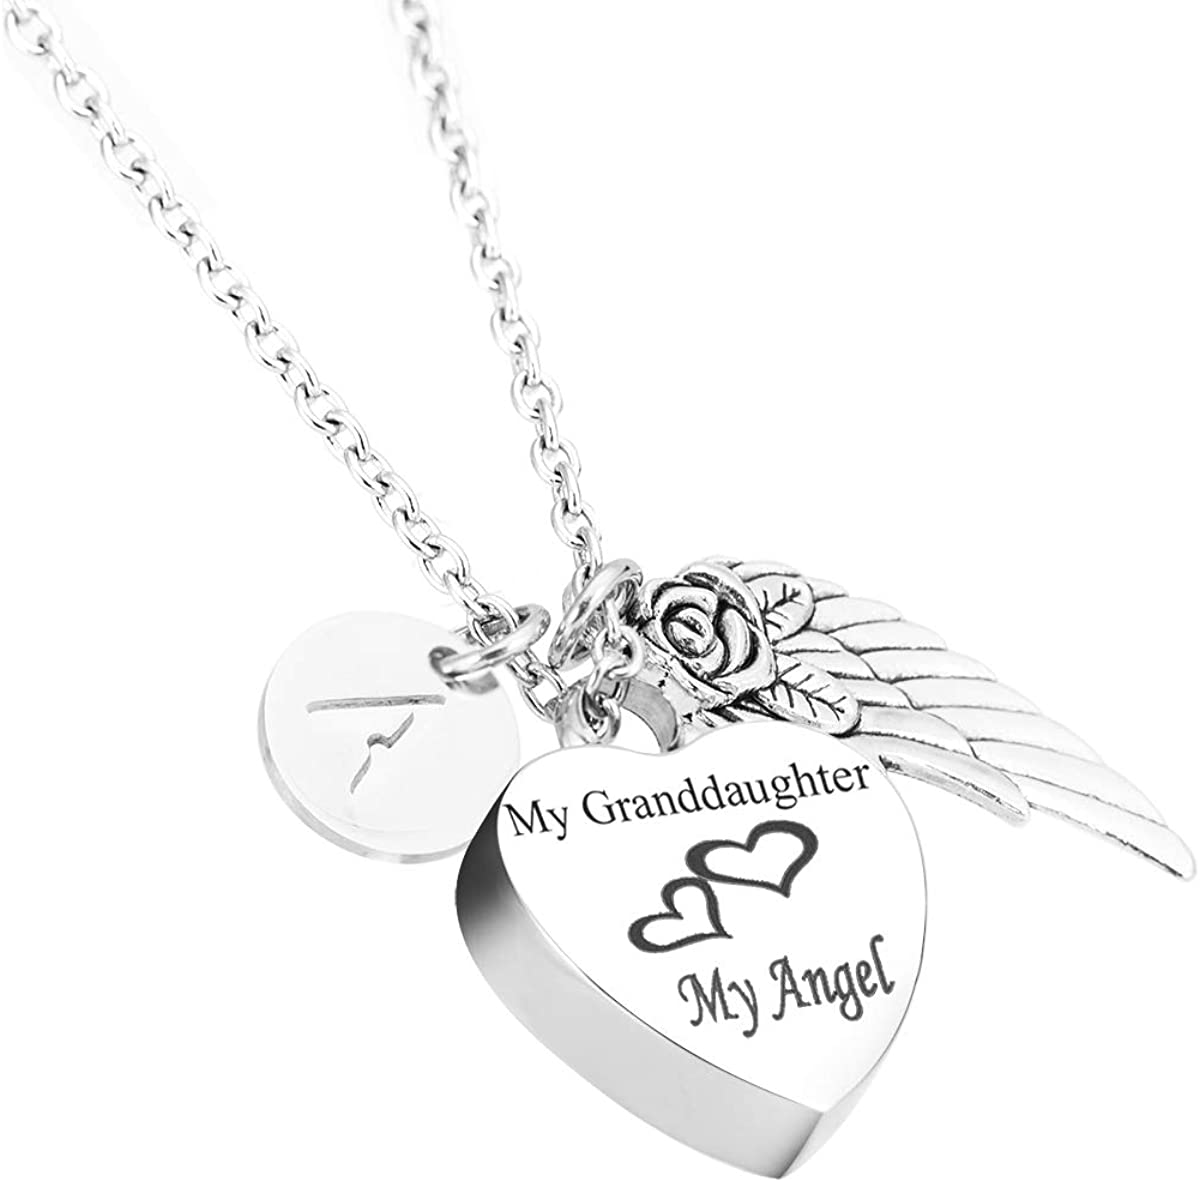 Glimkis Cremation Urn Jewelry My Granddaughter My Angel 26 Alphabet Charms Memorial Ash Keepsake Heart Necklace